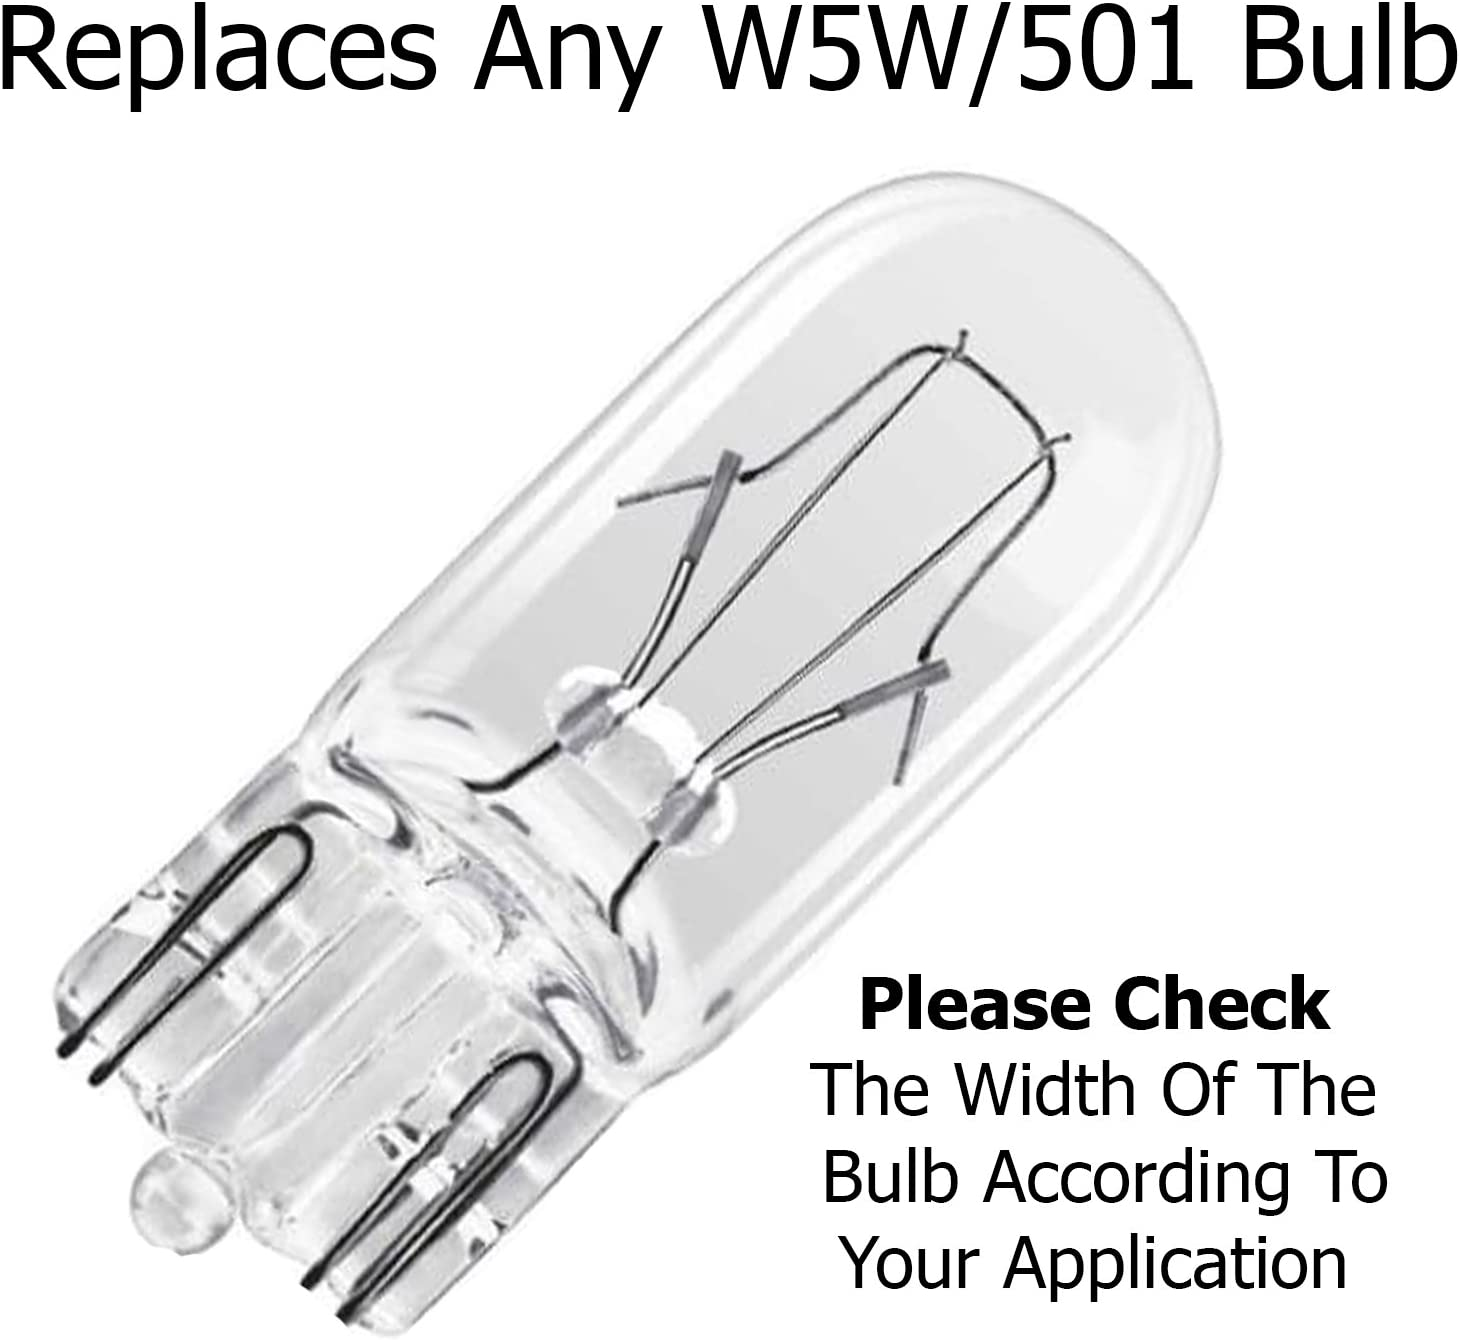 Free 12 Month Warranty Pack of 2 5 W Warm White//Yellow Light 4500k ARH Auto Accessories Ultra Vision 10 SMD T10 501 W5W Sidelight Bulbs 12 V